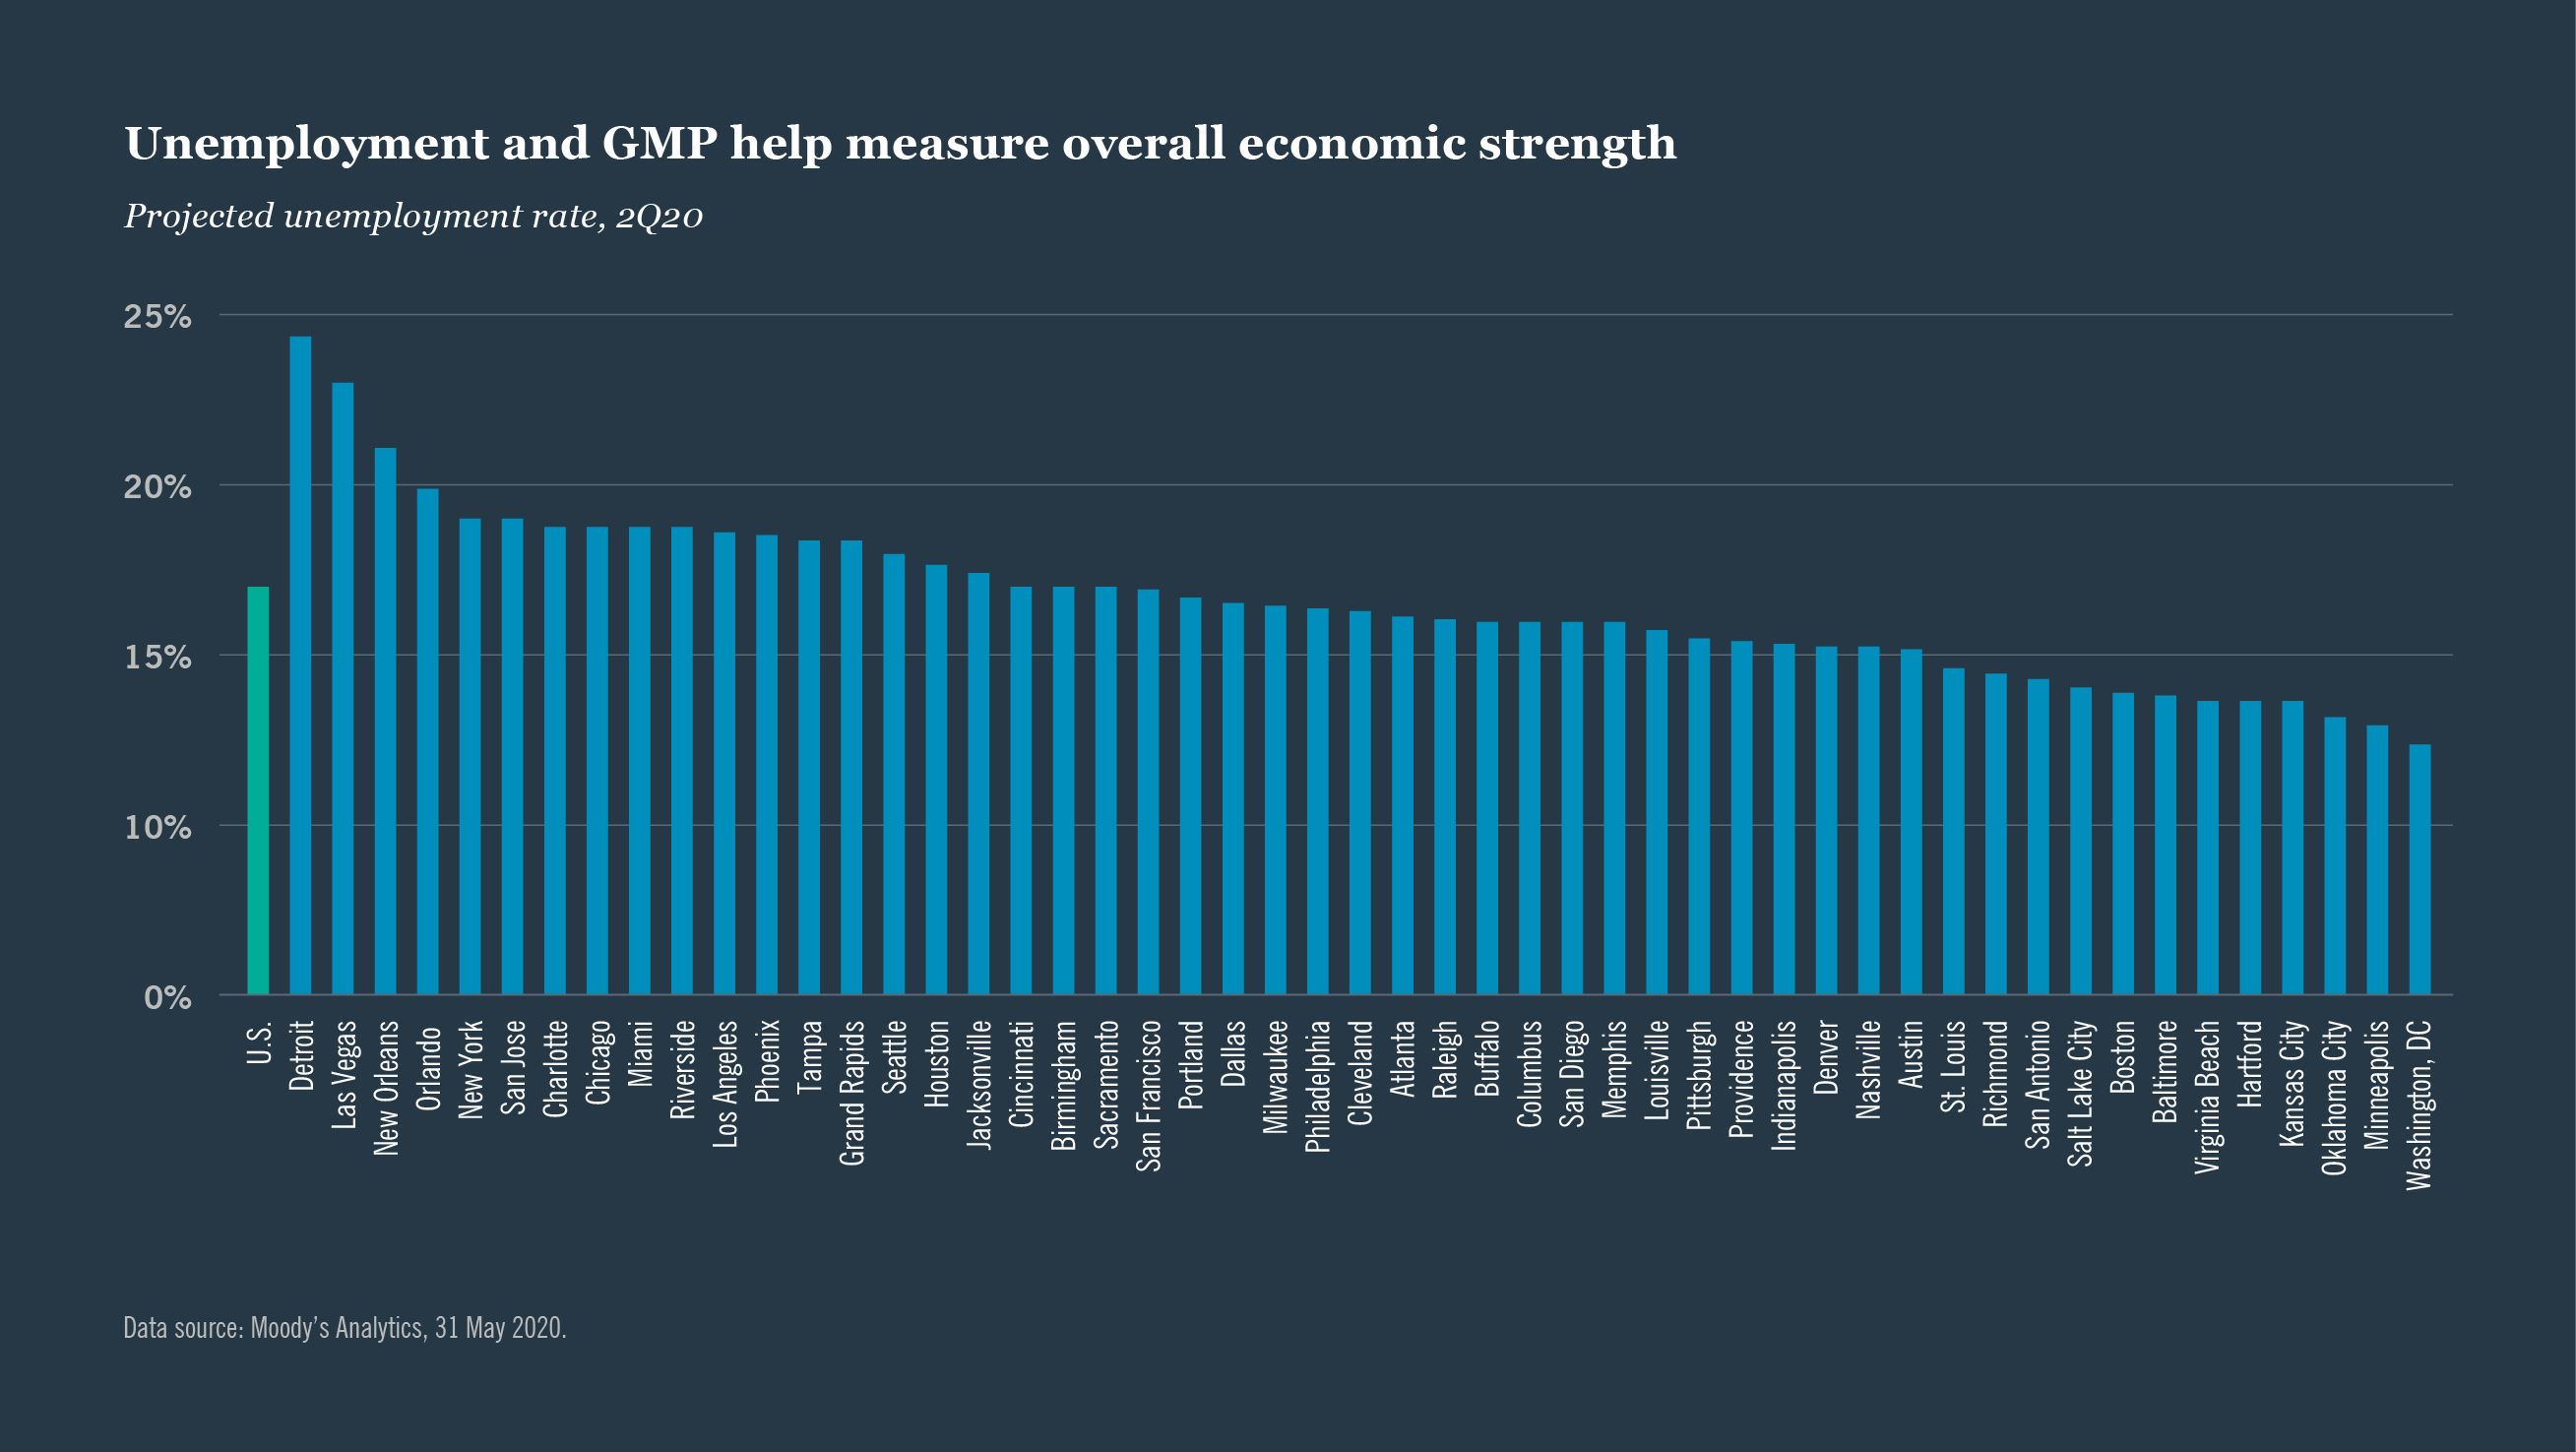 Unemployment and GMP help measure overall economic strength